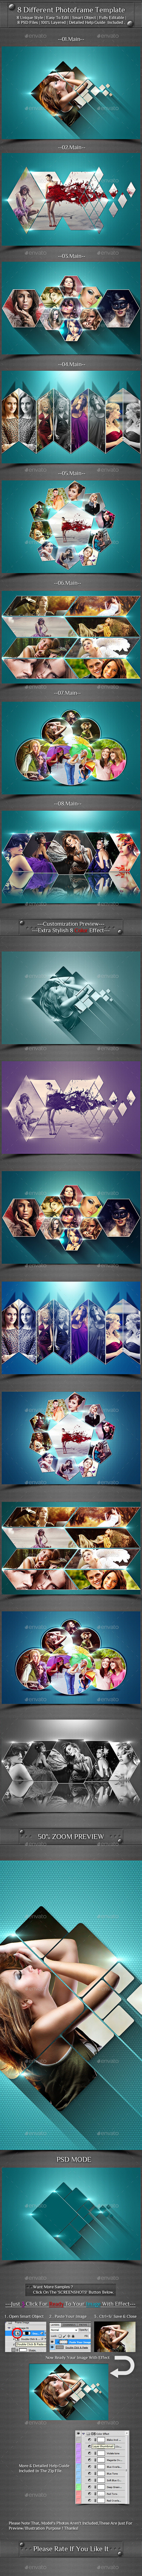 GraphicRiver 8 Different Photoframe Template 10813819